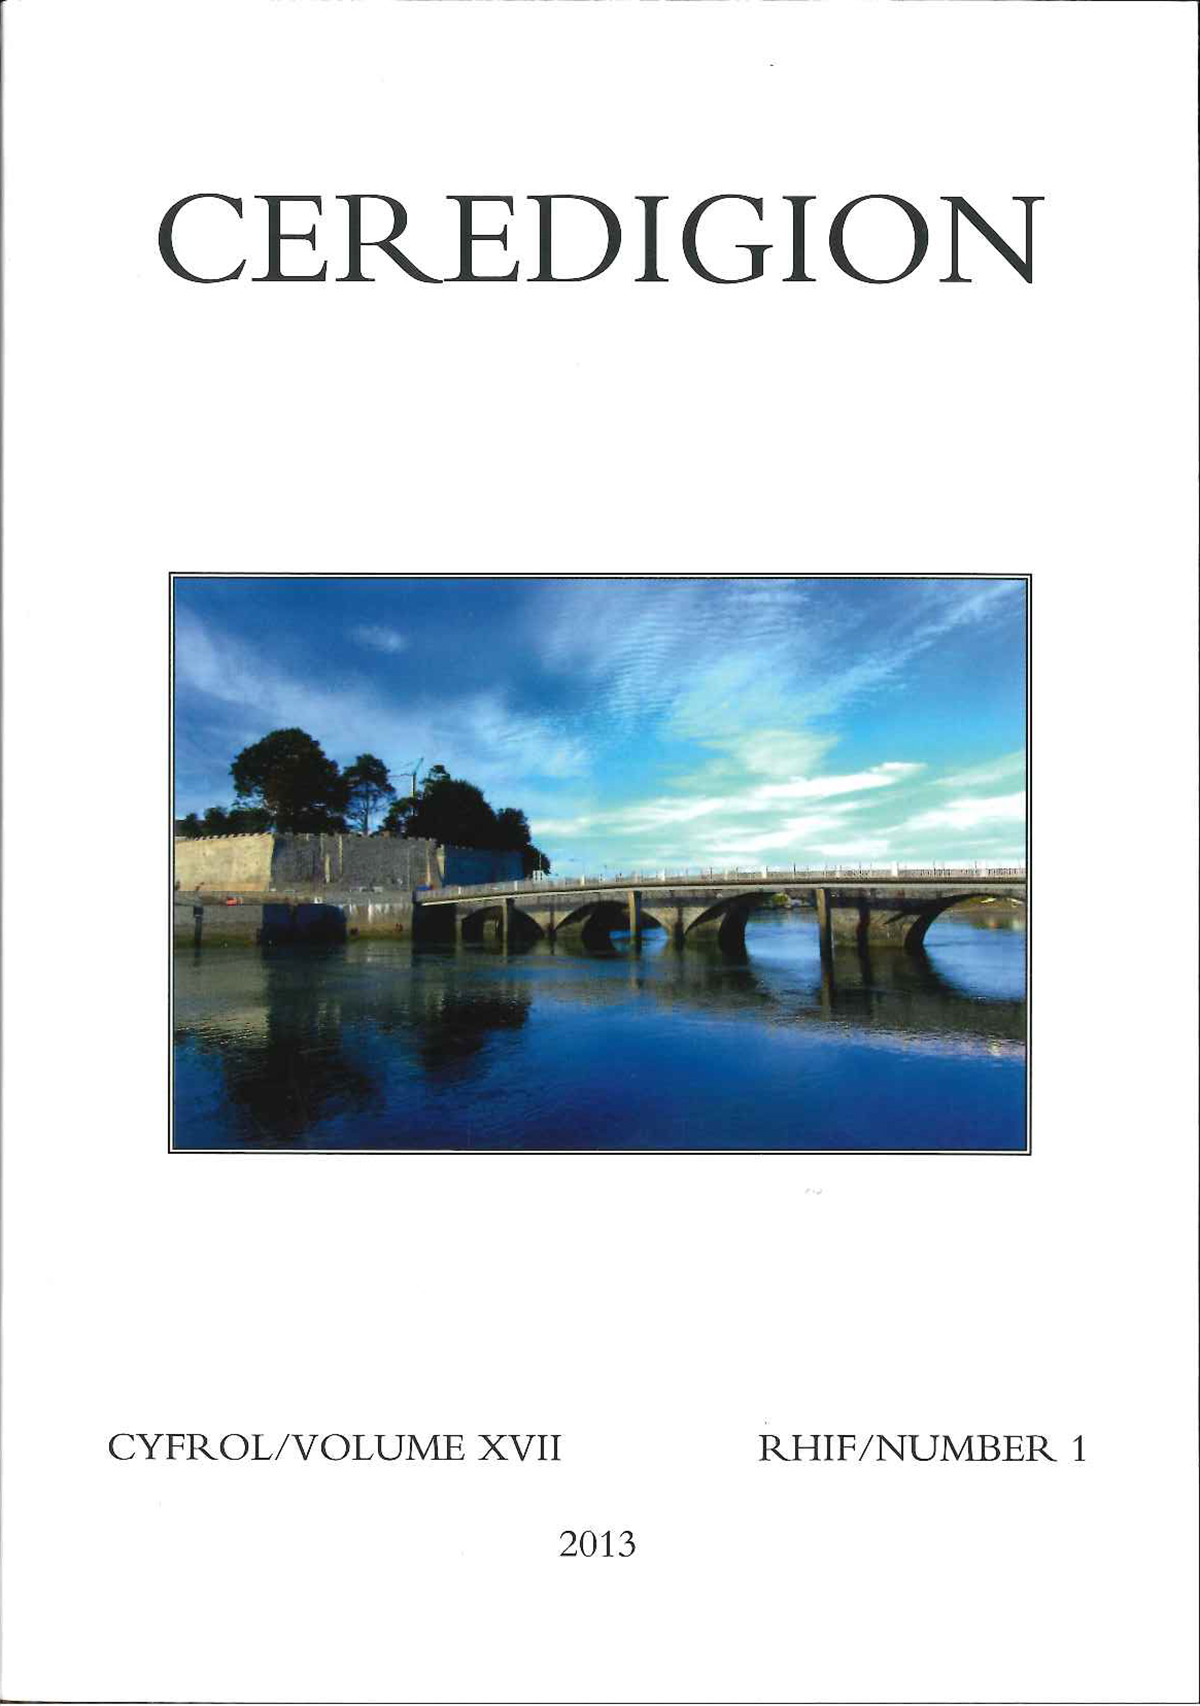 Ceredigion Journal of the Ceredigion Historical Society Vol XVII, No I 2013 - ISBN 0069 2263